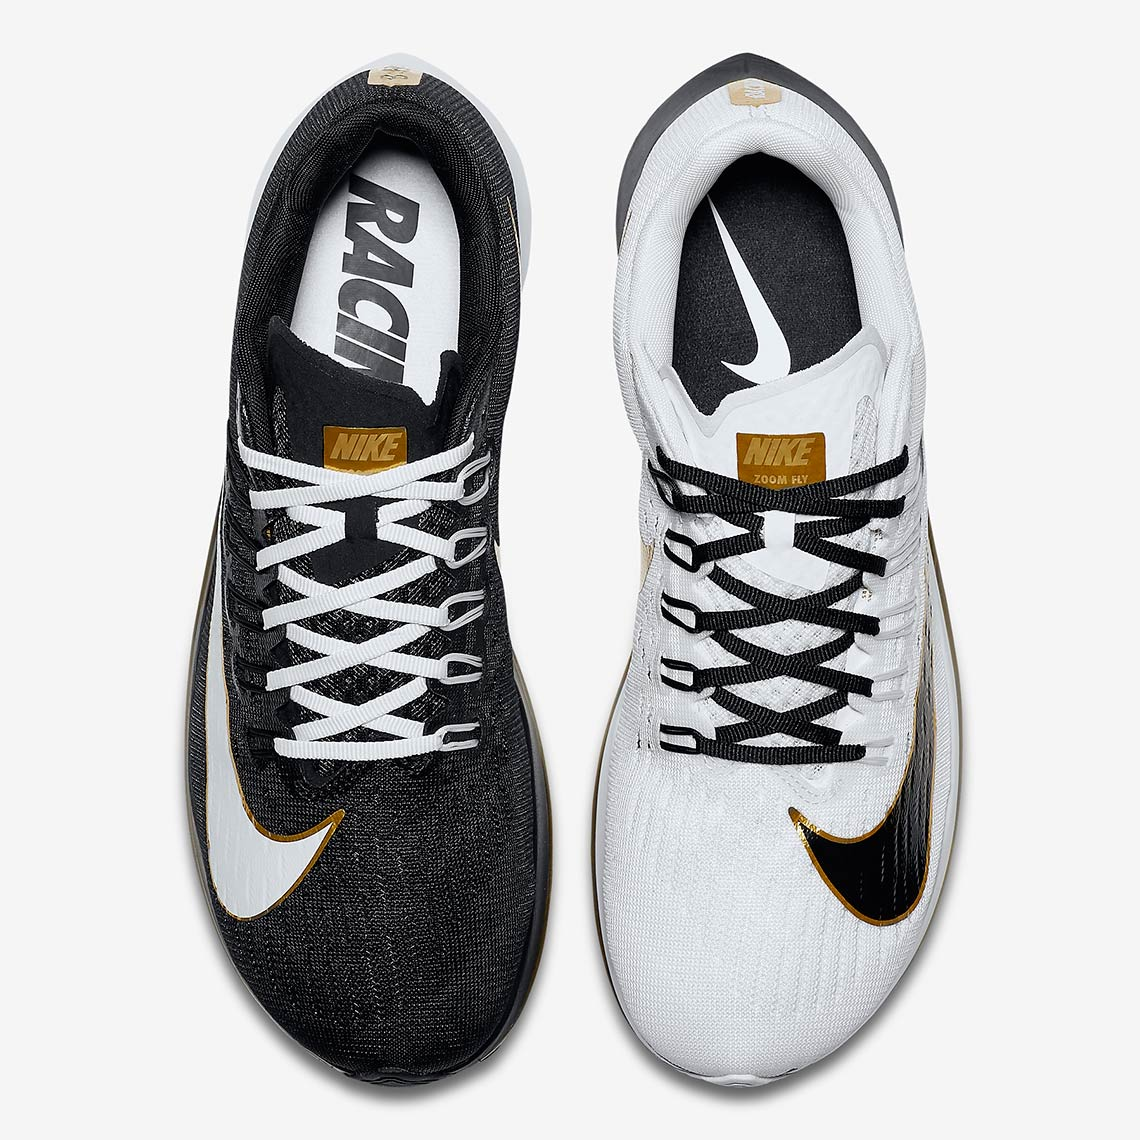 65a0ee0a287d Nike Zoom Fly Black White 880848-006 Release Info